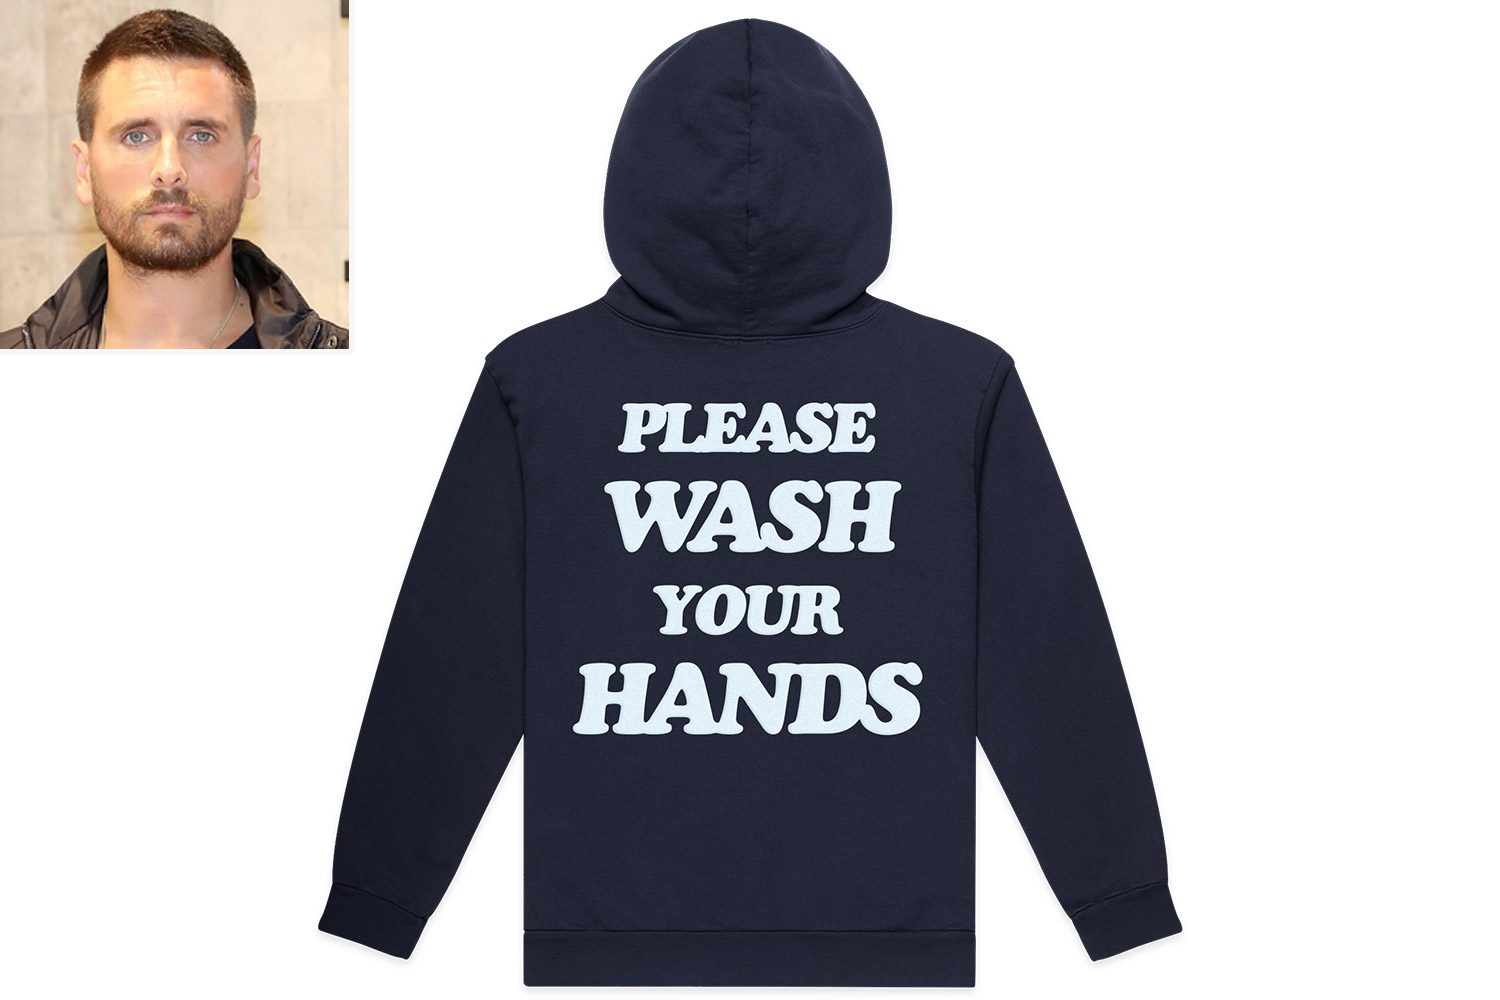 Scott Disick Is Selling Clothes That Say 'Wash Your Hands' in the Wake of Coronavirus Outbreak